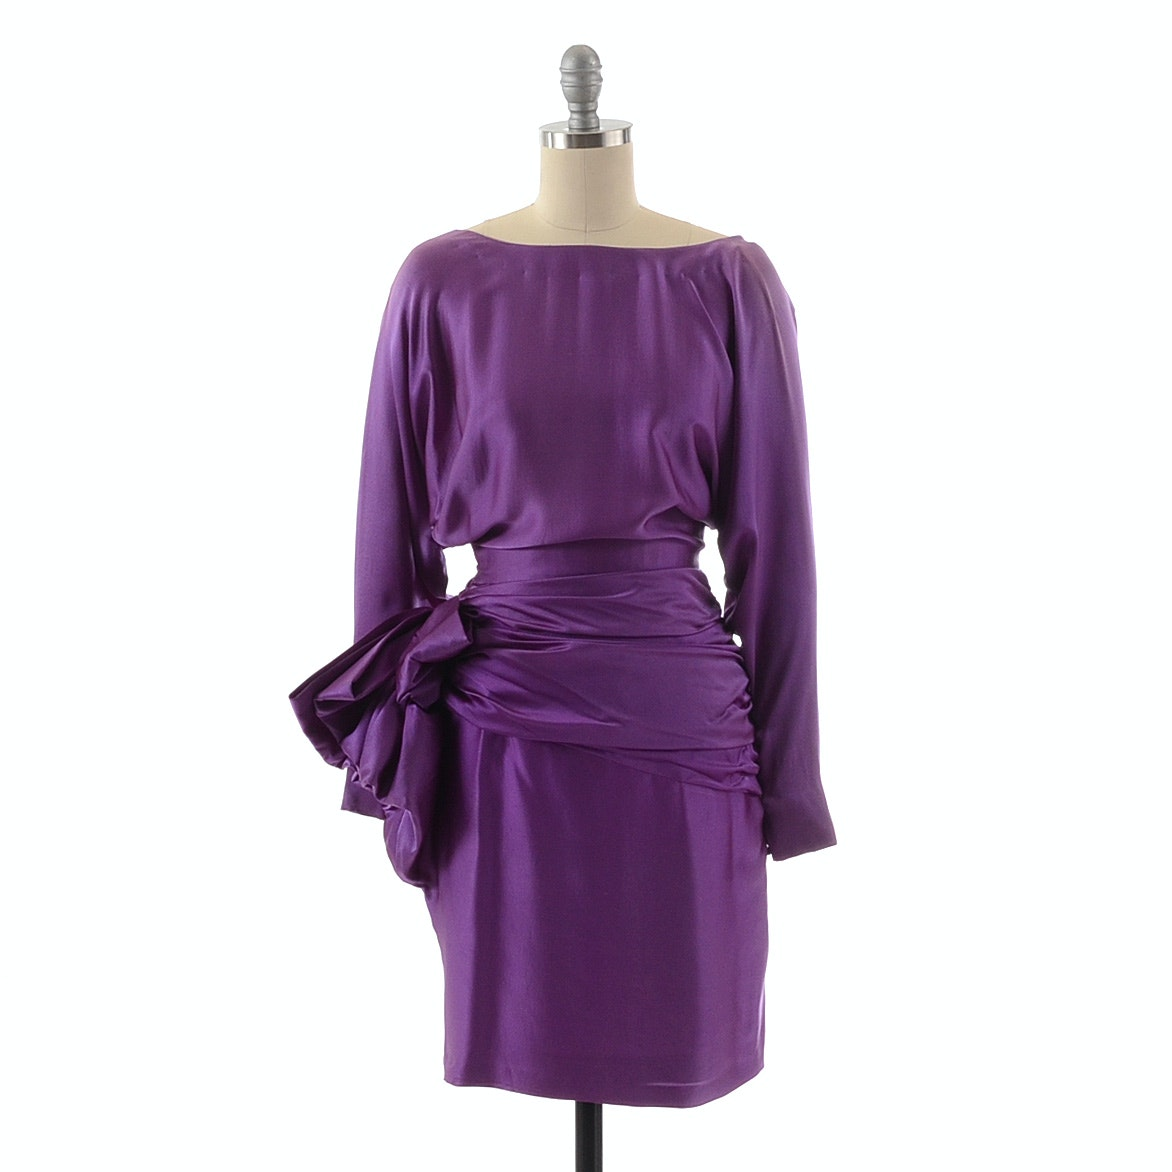 1980s Vicky Tiel of Paris Purple Silk Cocktail Dress with Open Back